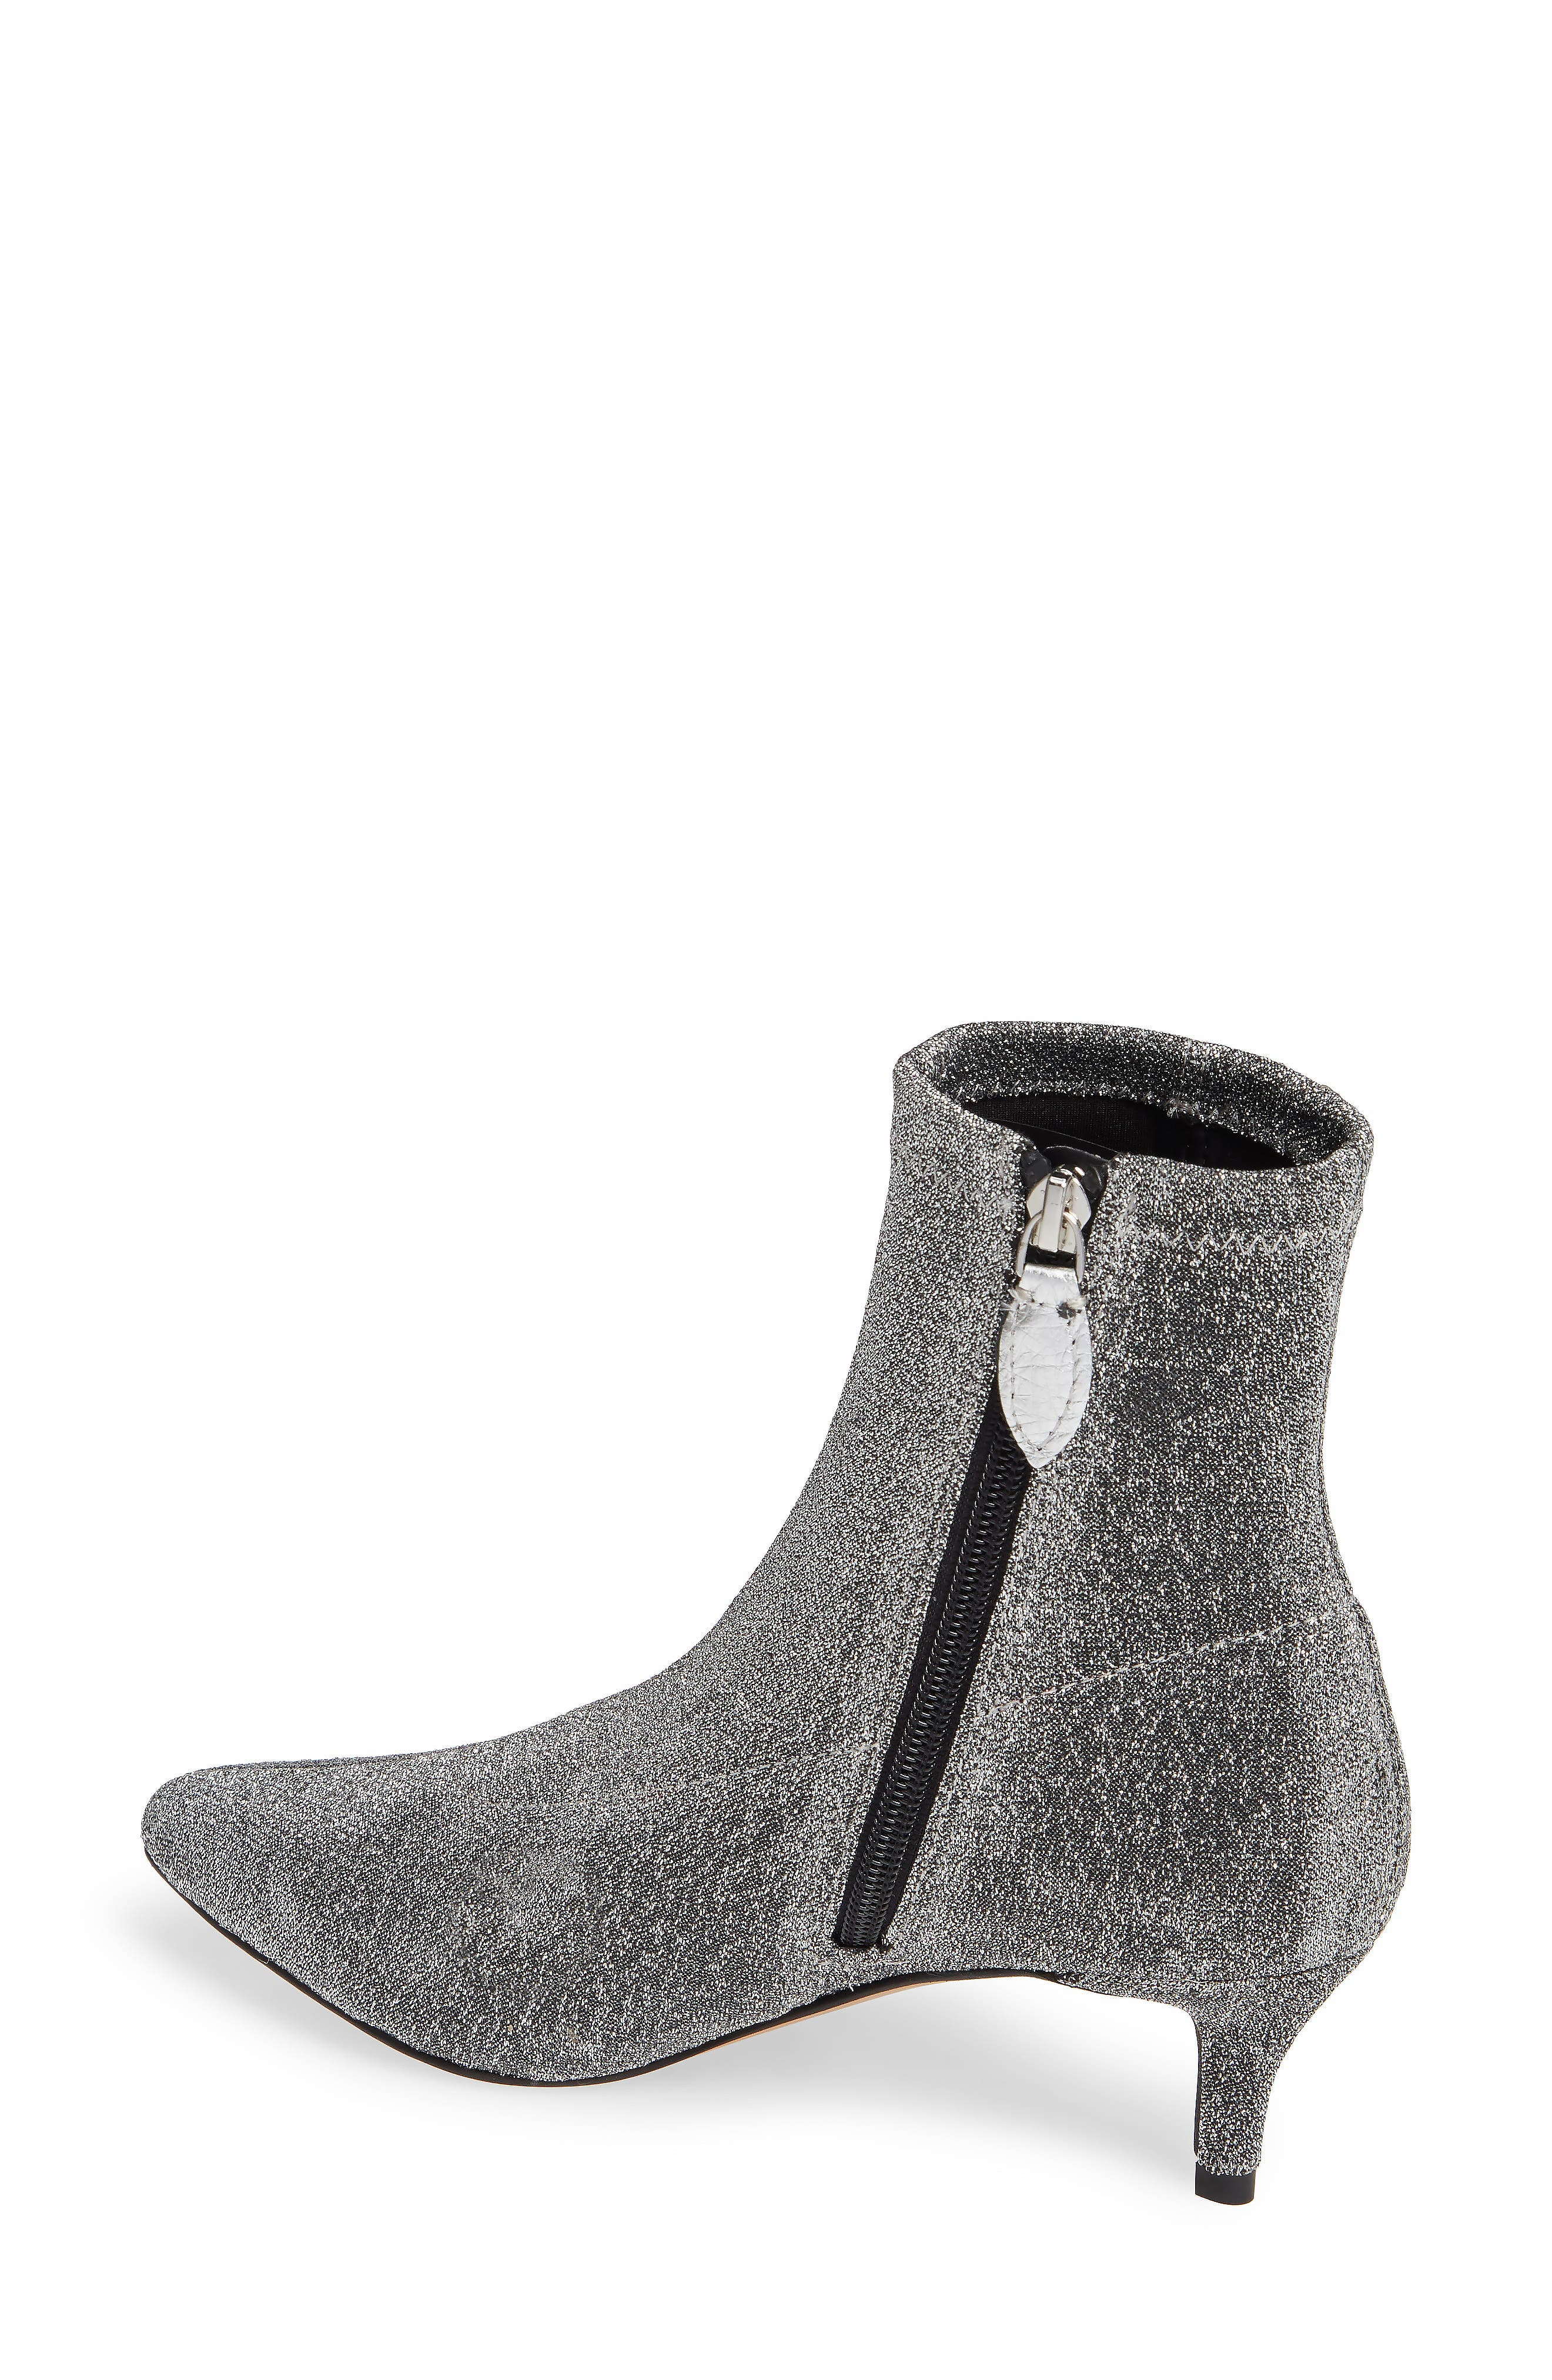 Sayres Bootie,                             Alternate thumbnail 2, color,                             SILVER FABRIC